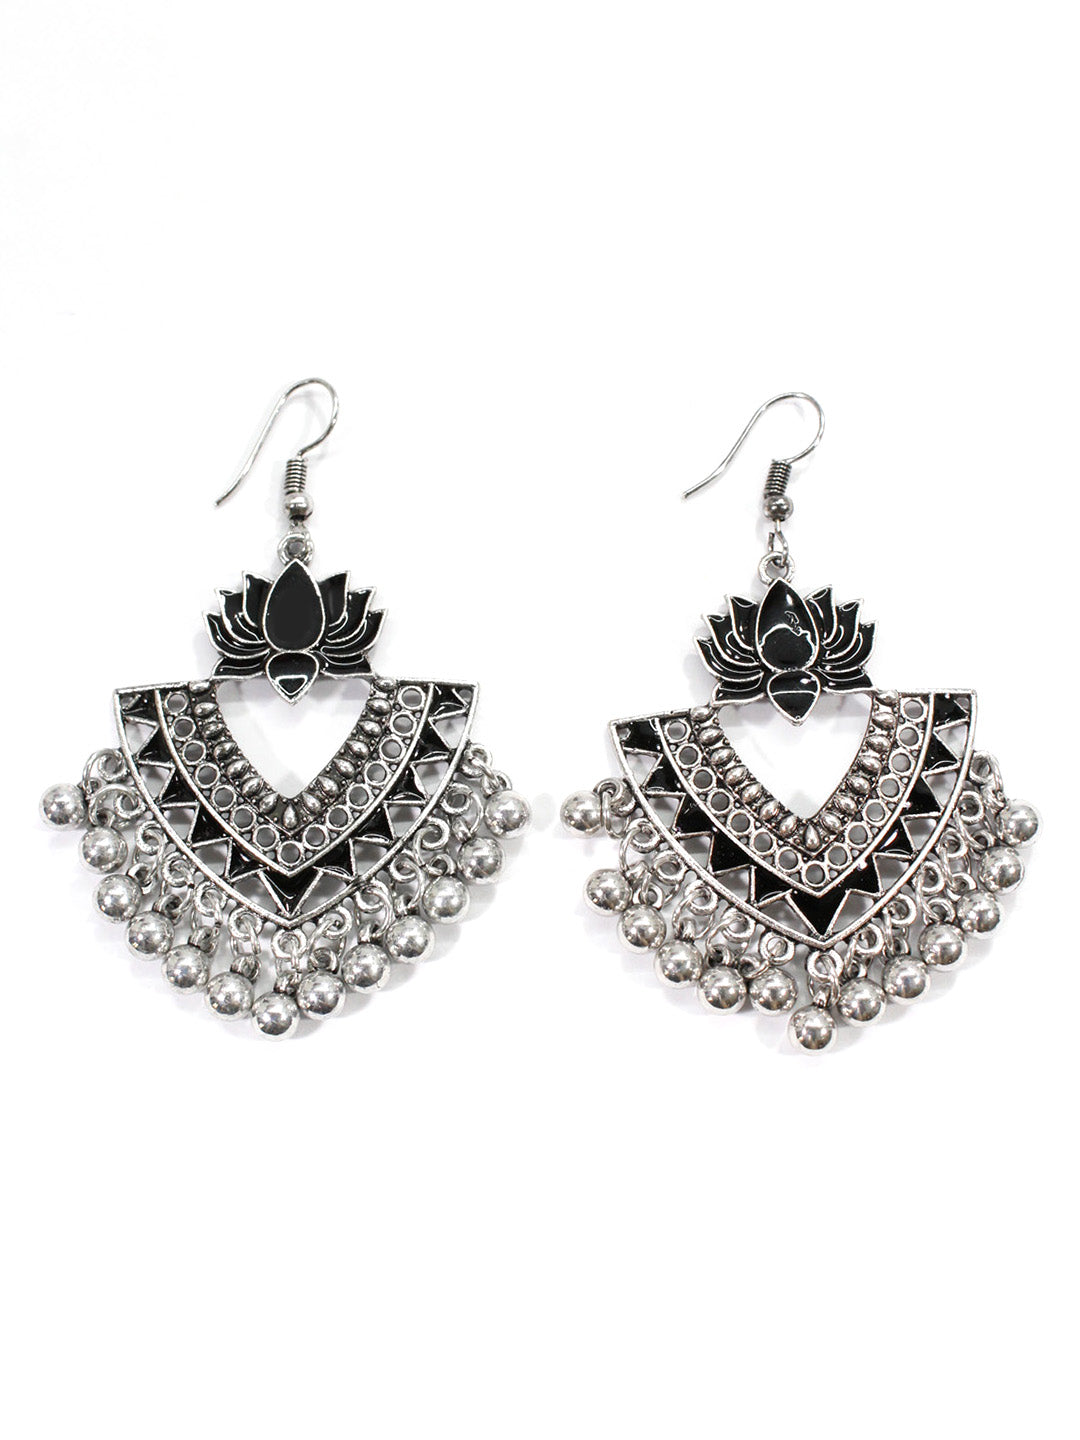 Aana Silver Plated Black Color Lotus Design Afghani Earring-AANA1-Earring